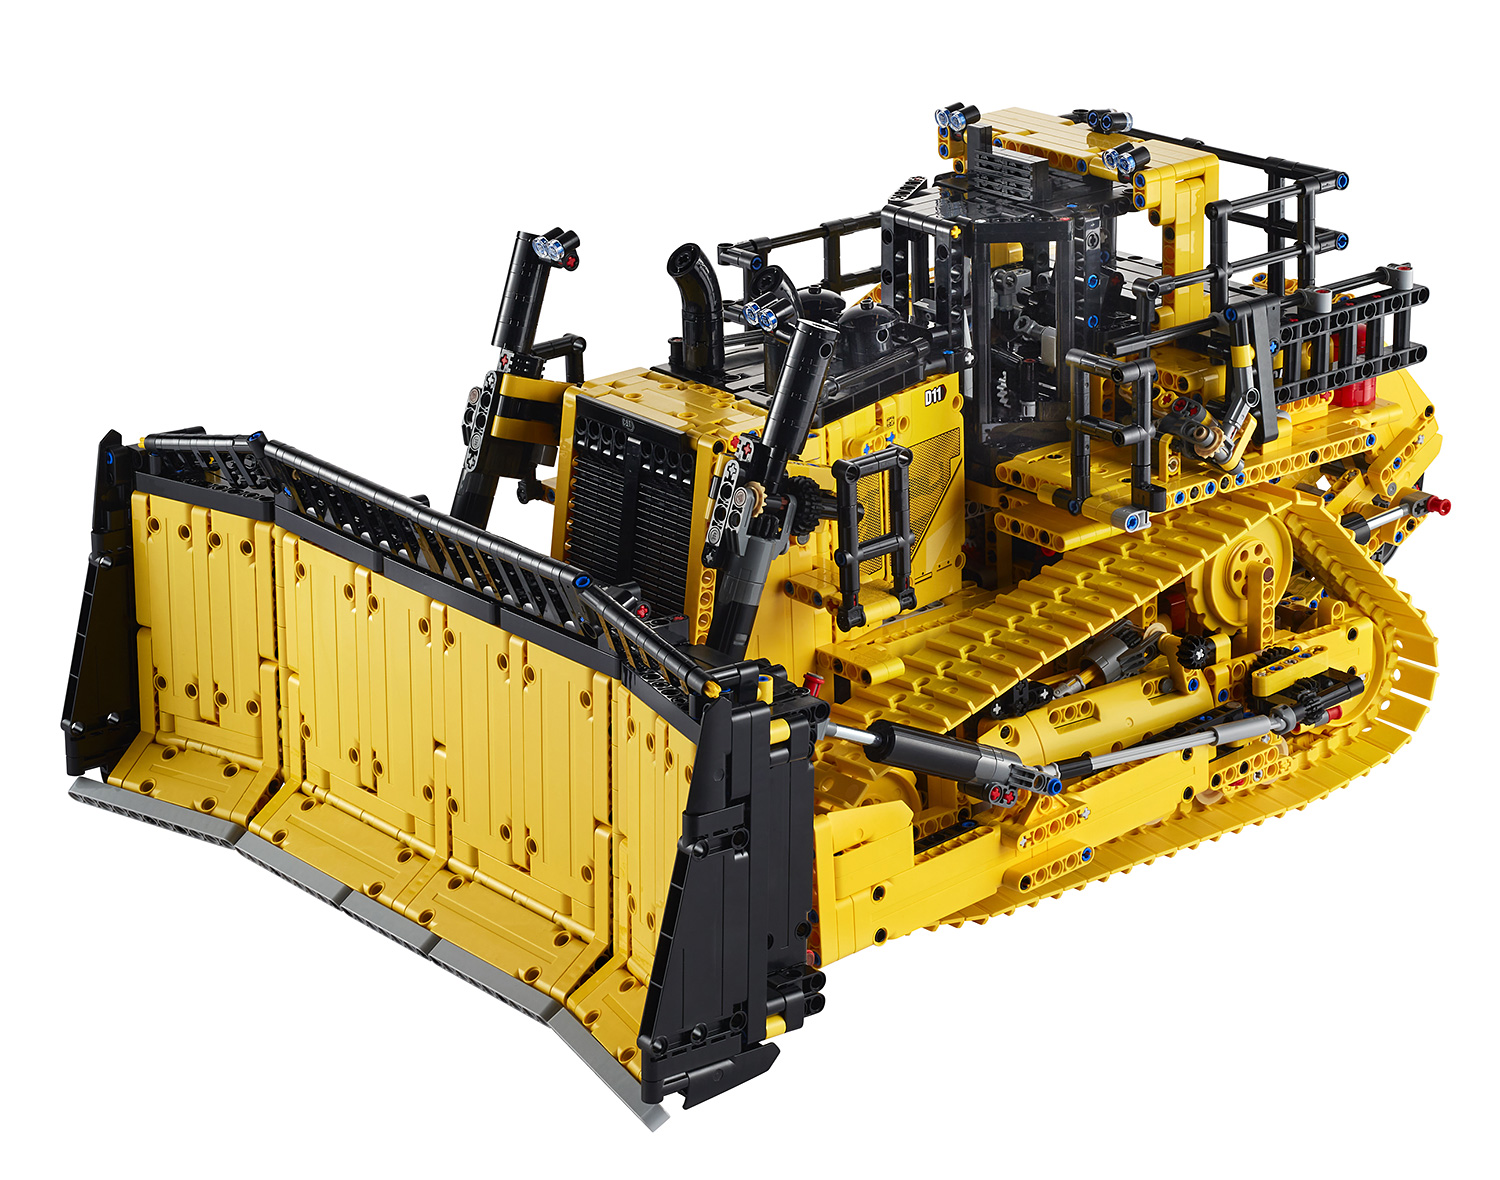 LEGO Technic Goes Big with App-Controlled Cat Bulldozer at werd.com